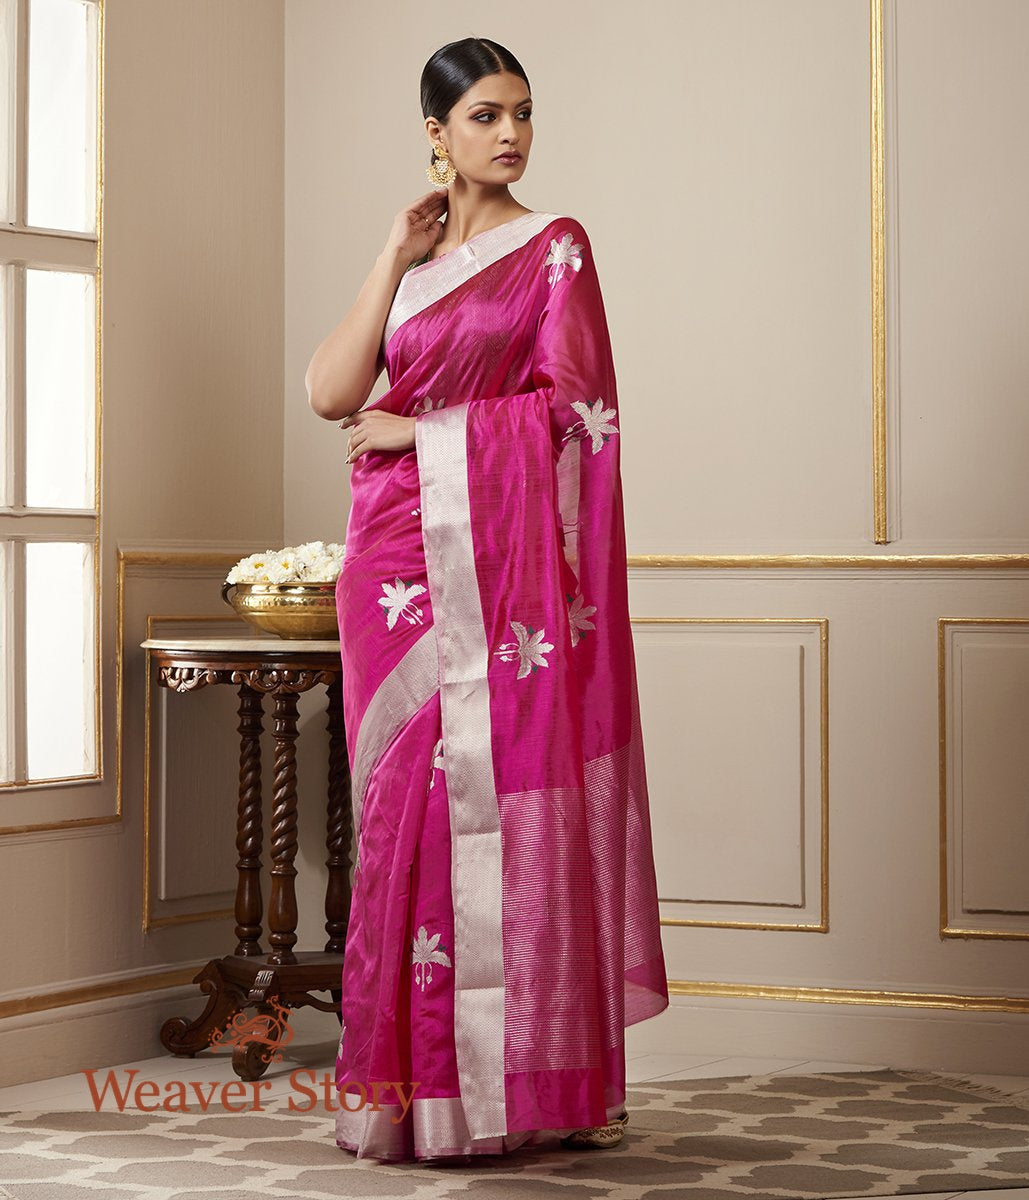 Handwoven Pink Chanderi Silk Saree with Birds on a Tree